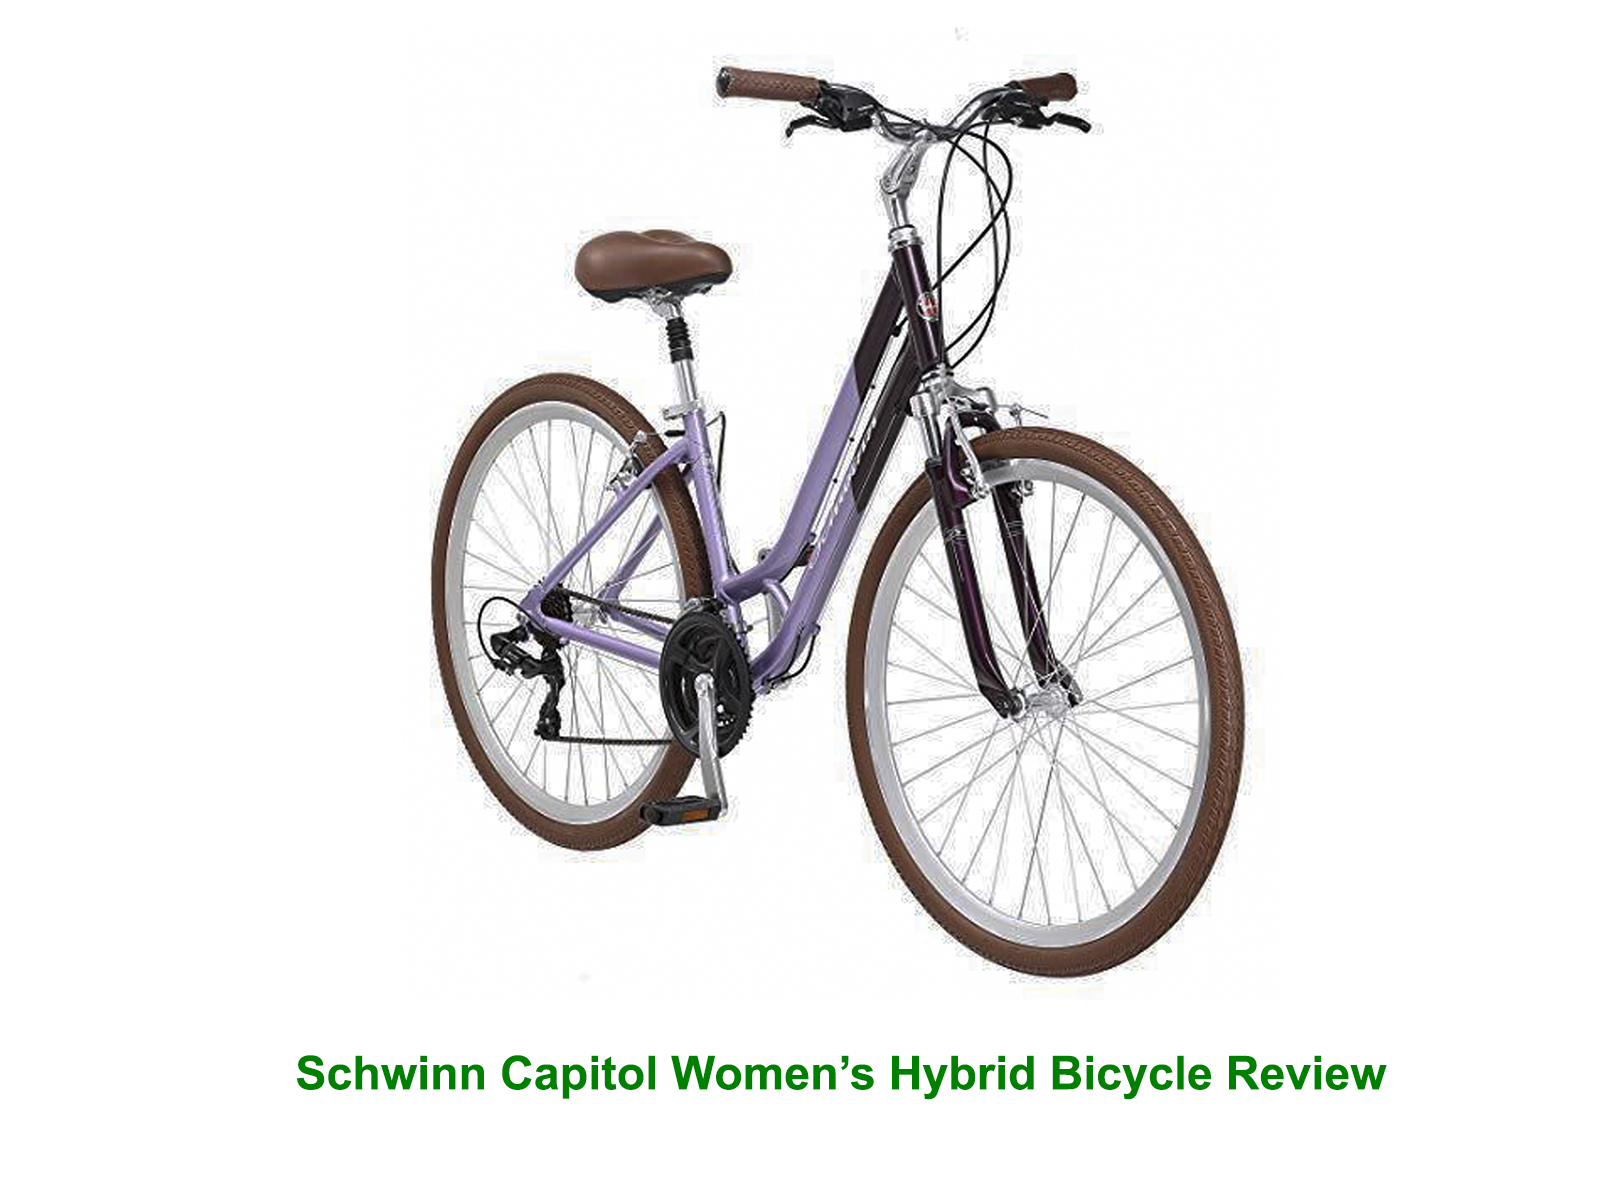 Schwinn Capitol Women's Hybrid Bicycle Review